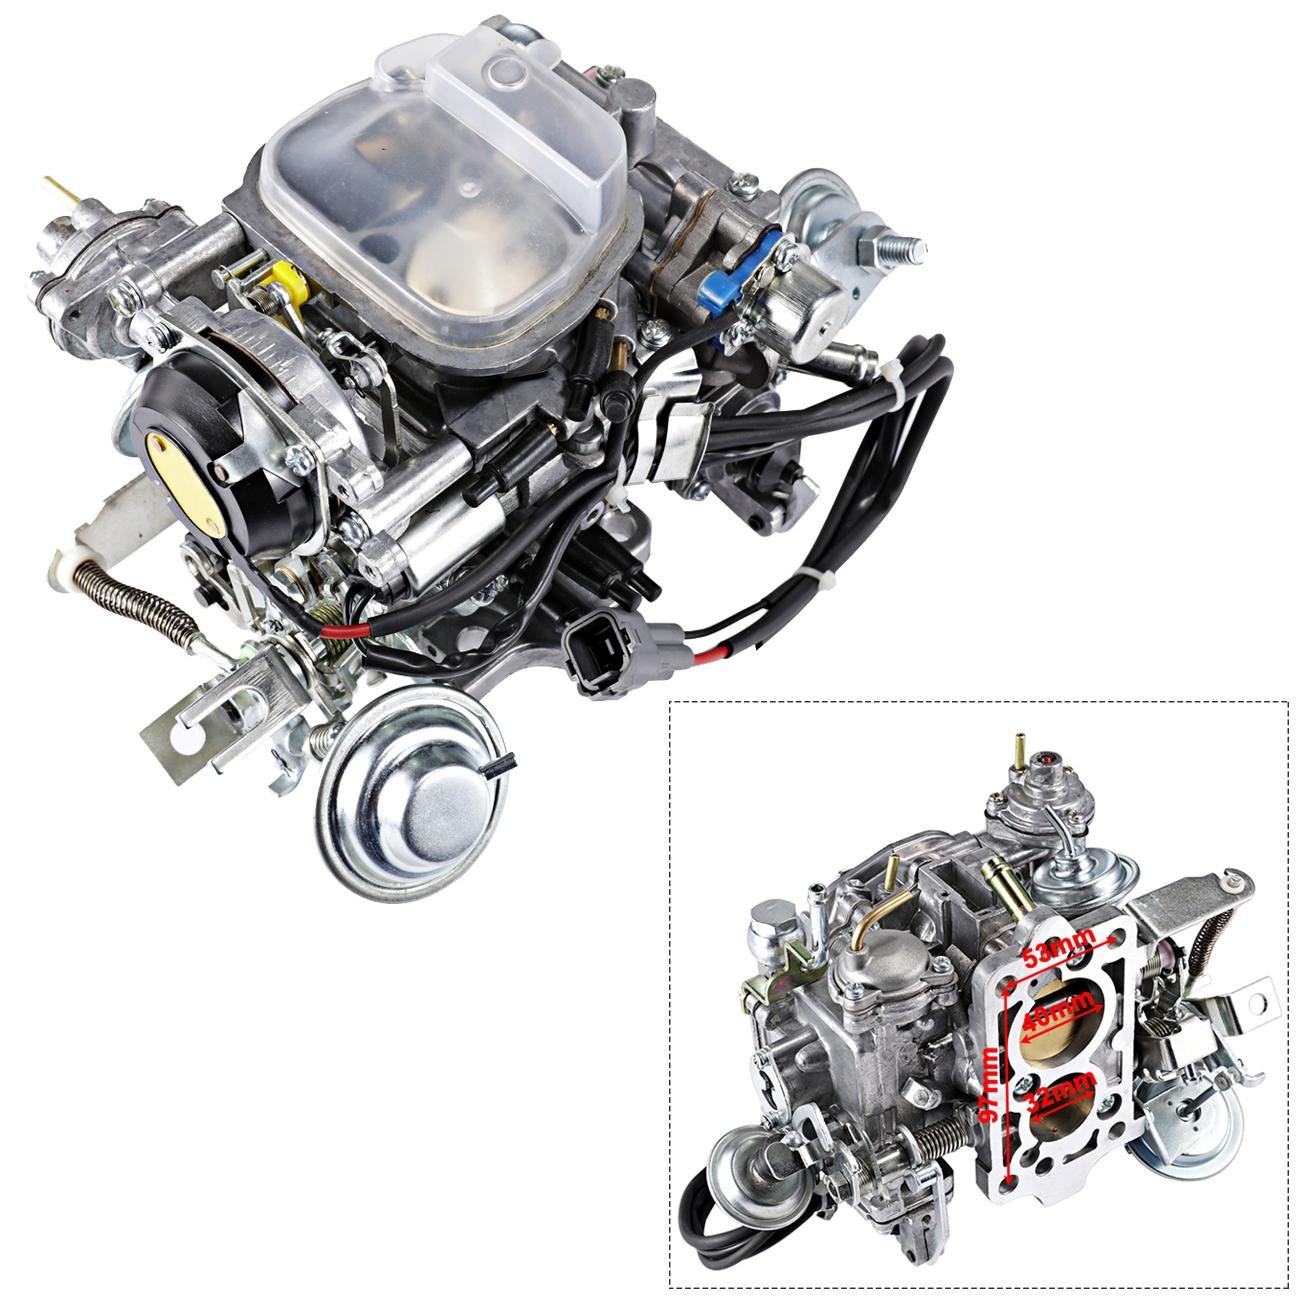 ALAVENTE 21100-35463 Carburetor Carb for Toyota Pickup Trucks 1988-1990 22R Engine (automatic choke)